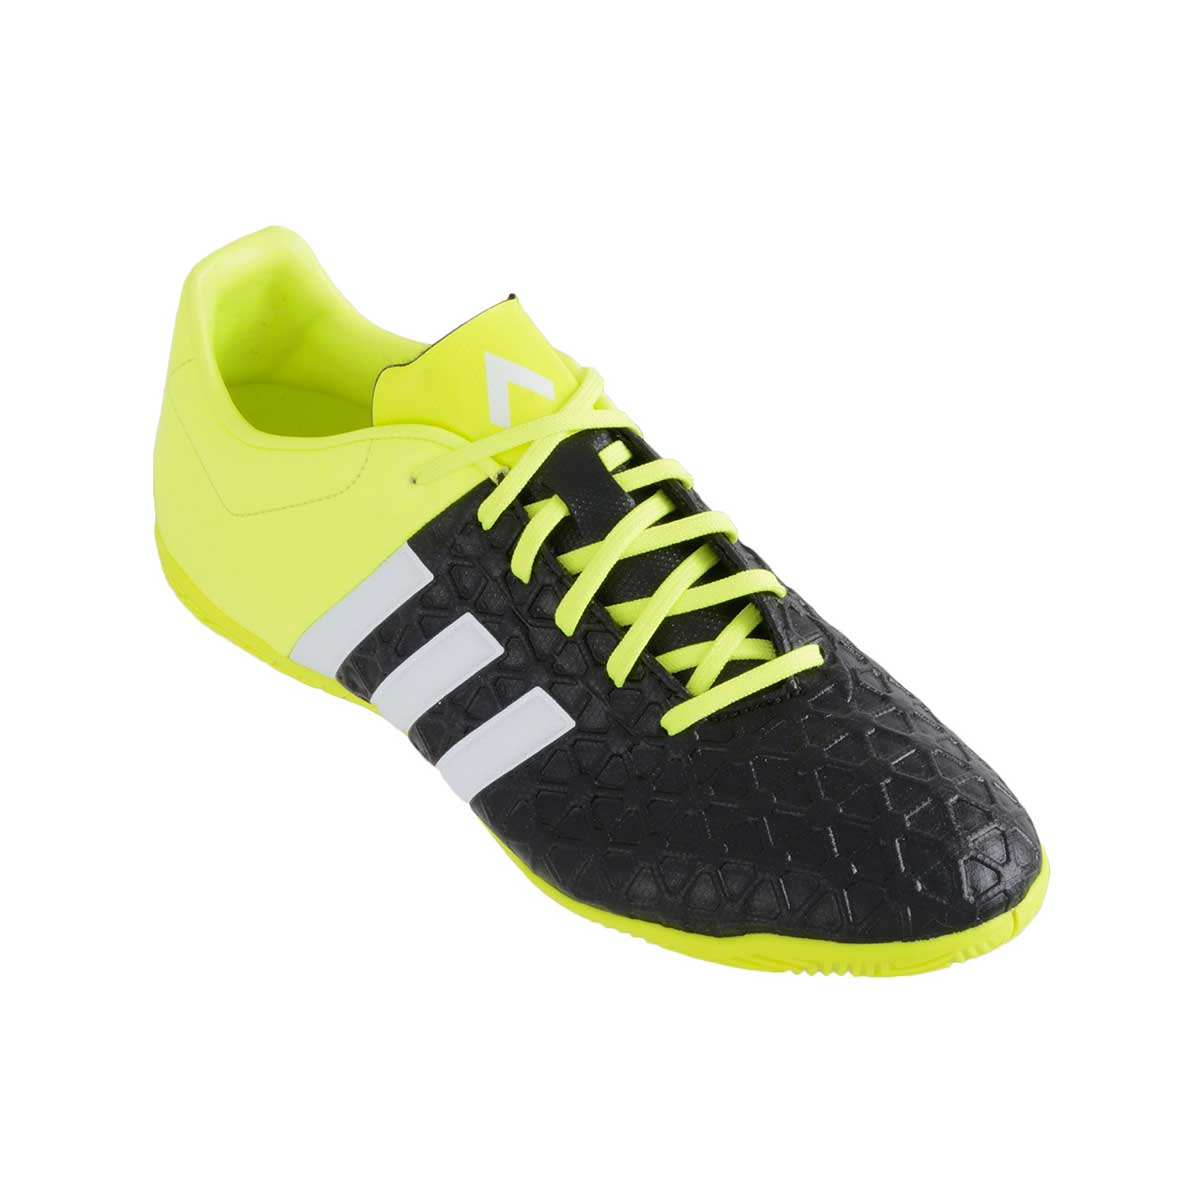 cheap for discount 0ff2d f1d46 Adidas ACE 15.4 Indoor Football Shoes